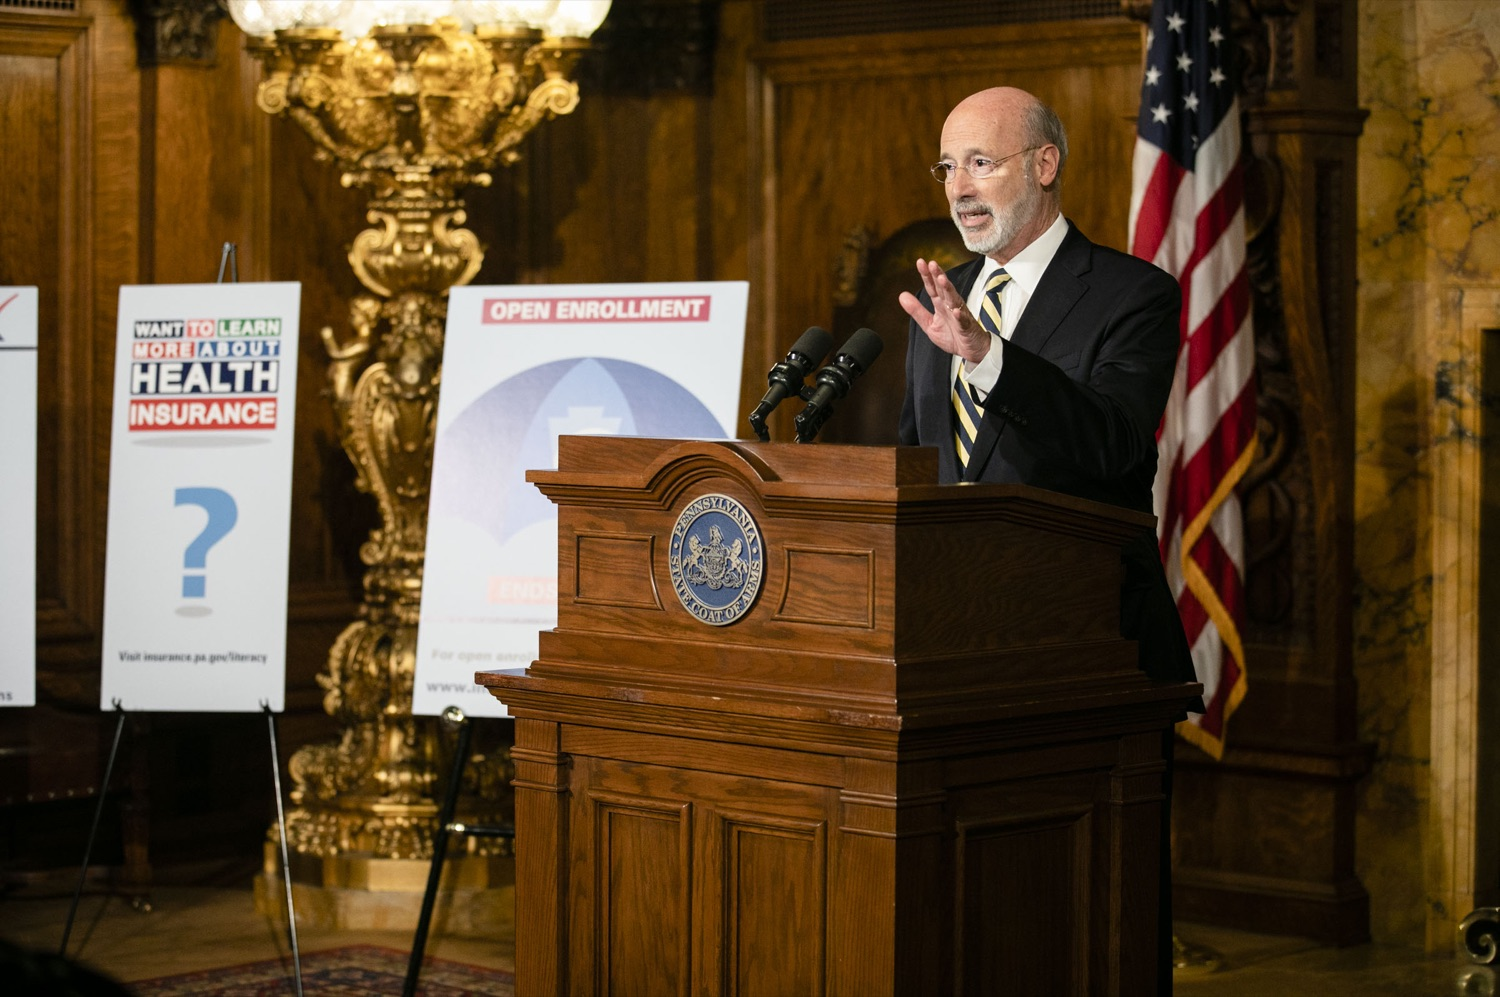 "<a href=""http://filesource.abacast.com/commonwealthofpa/photo/17564_GOV_aca_amb_002.jpg"" target=""_blank"">⇣ Download Photo<br></a>Governor Tom Wolf and Insurance Commissioner Jessica Altman advised Pennsylvanians that now is the time to buy health insurance on the federal exchange, healthcare.gov, as open enrollment continues for Affordable Care Act (ACA) plans through Dec. 15. Consumers have more options in Pennsylvania, and many will find they qualify for subsidies. November 7, 2019. Harrisburg, PA."